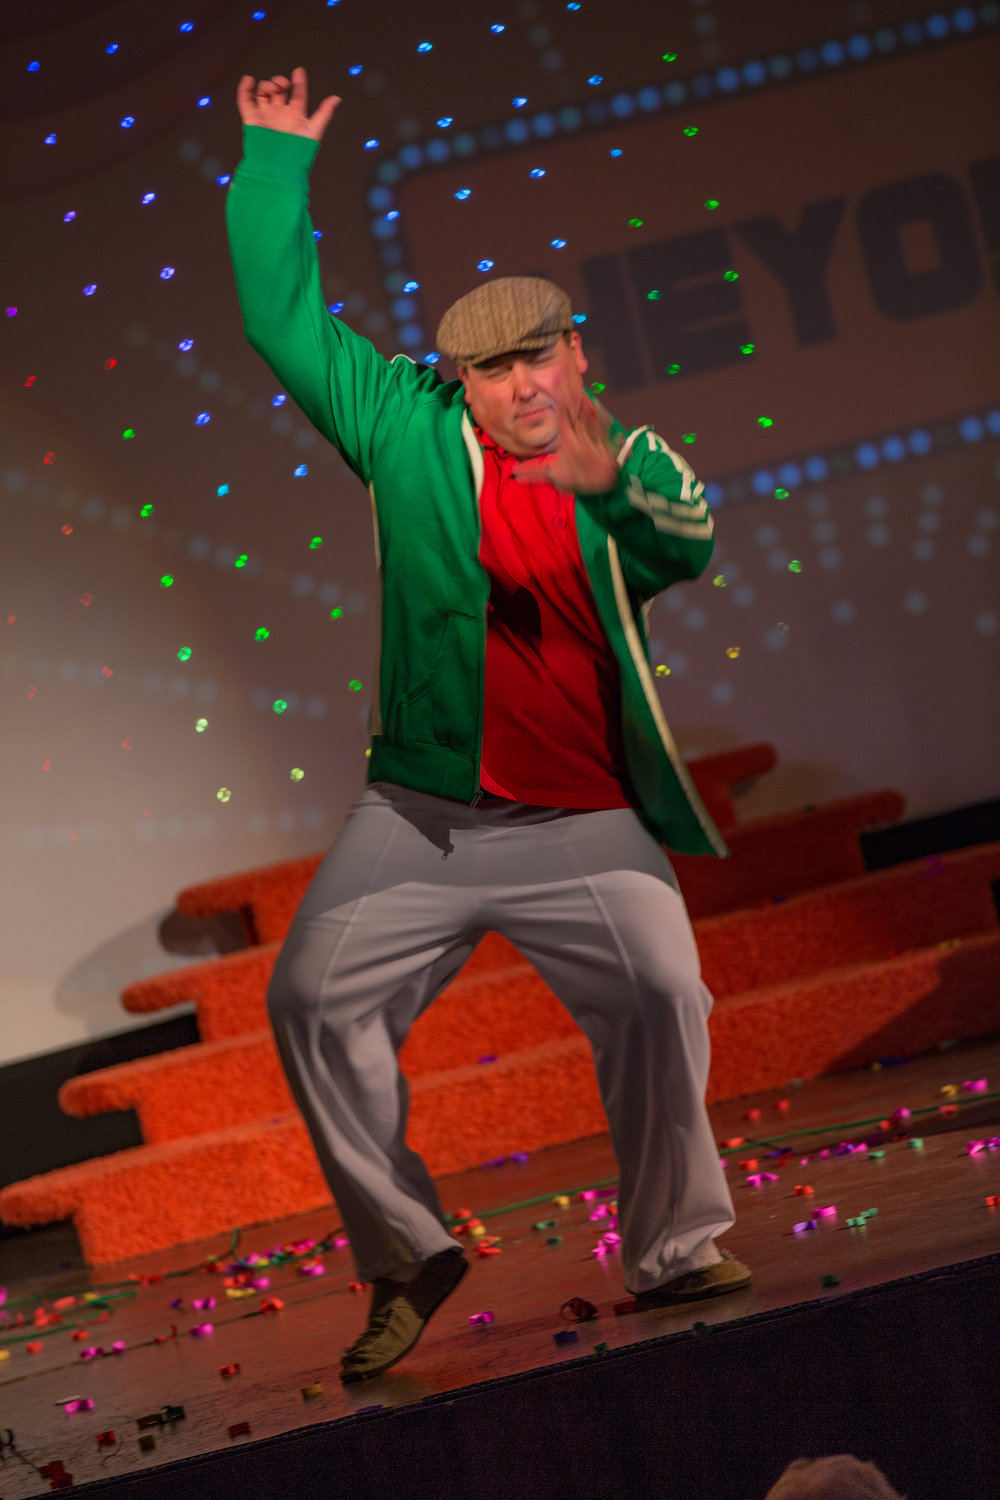 Robert Behnke defying gravity with his out-of-this-world dance moves.